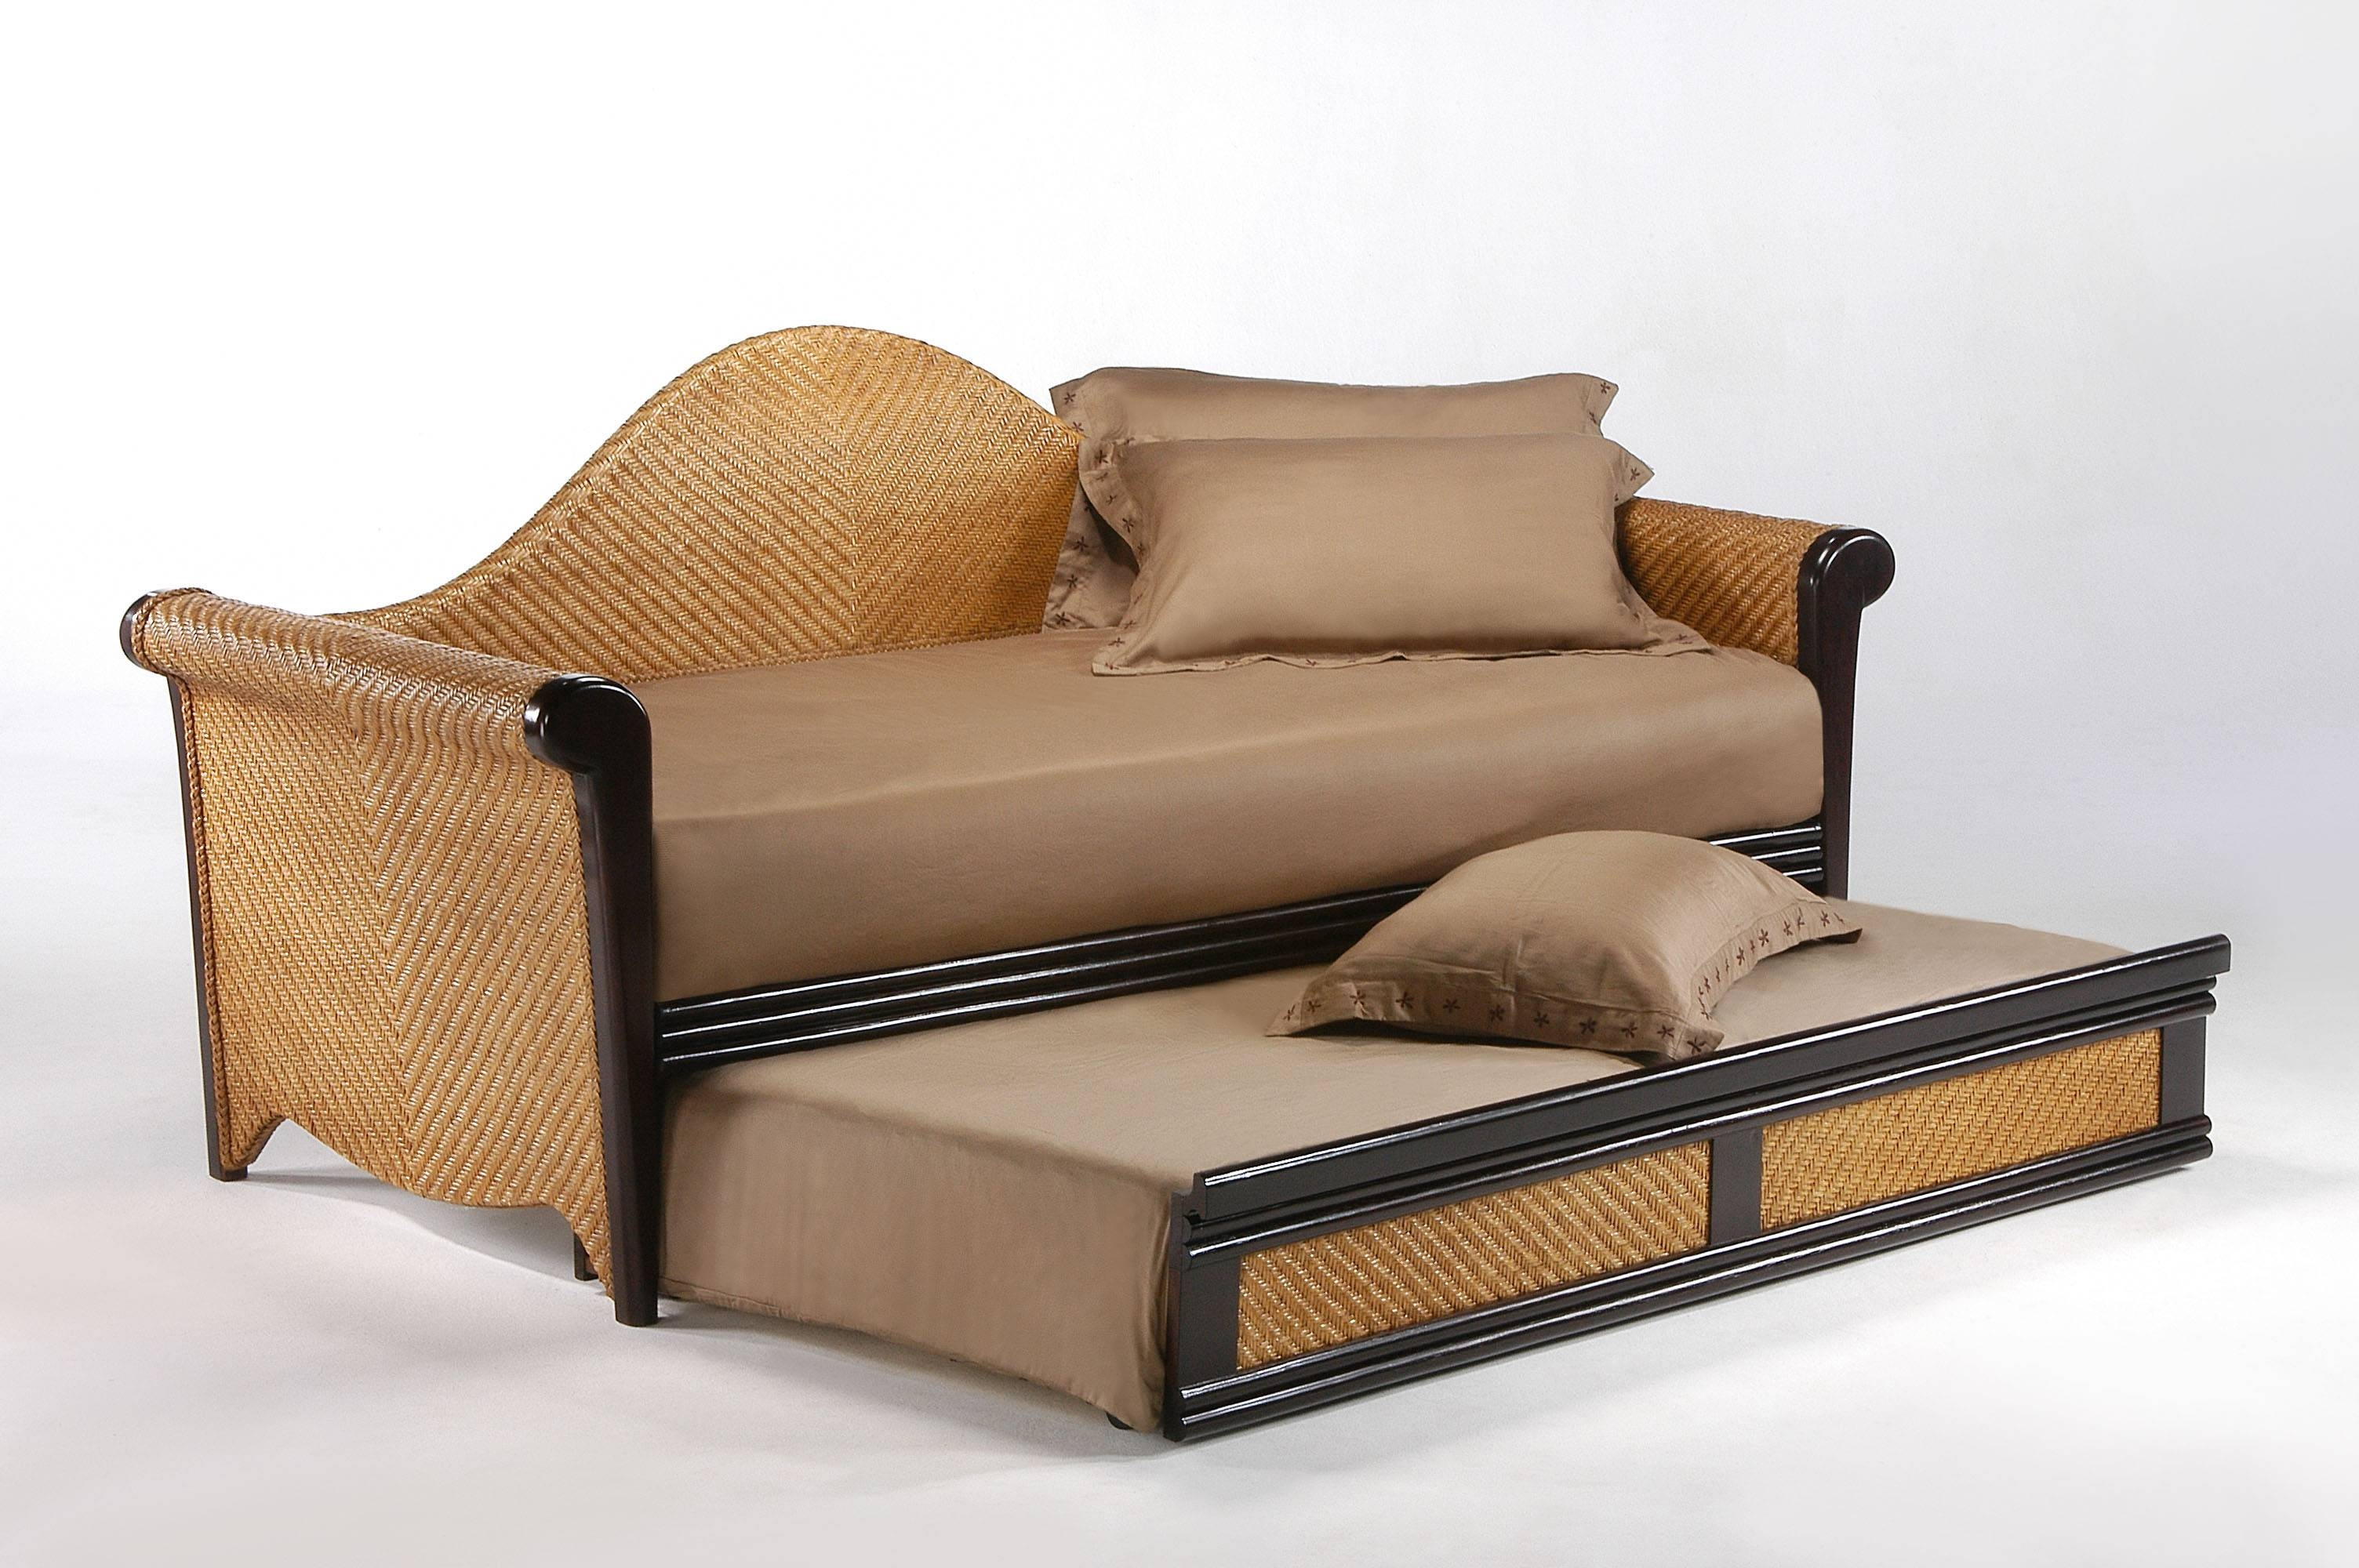 Sofa Daybed With Trundle | Best Sofas Ideas - Sofascouch with regard to Sofas With Trundle (Image 9 of 15)